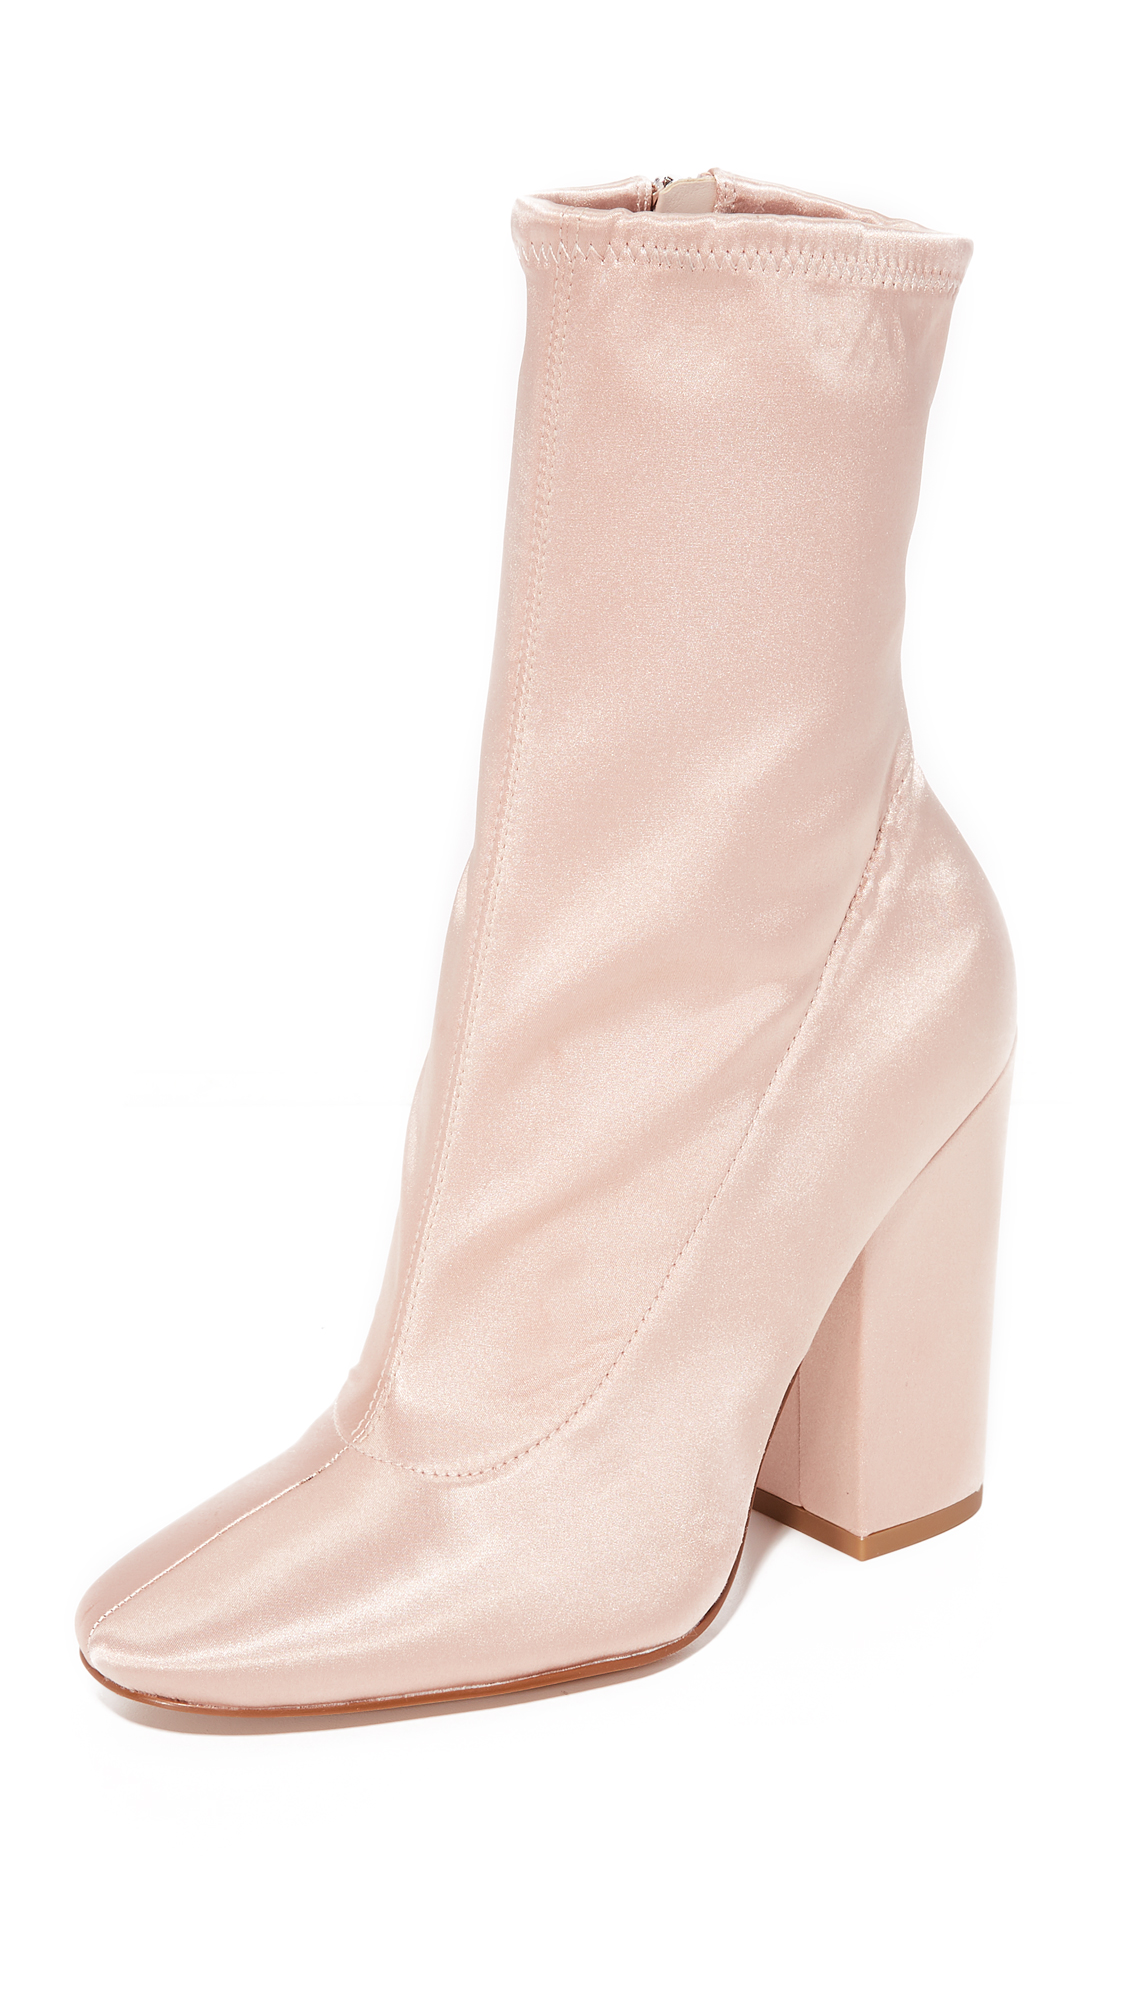 KENDALL + KYLIE Hailey Satin Booties - Blush